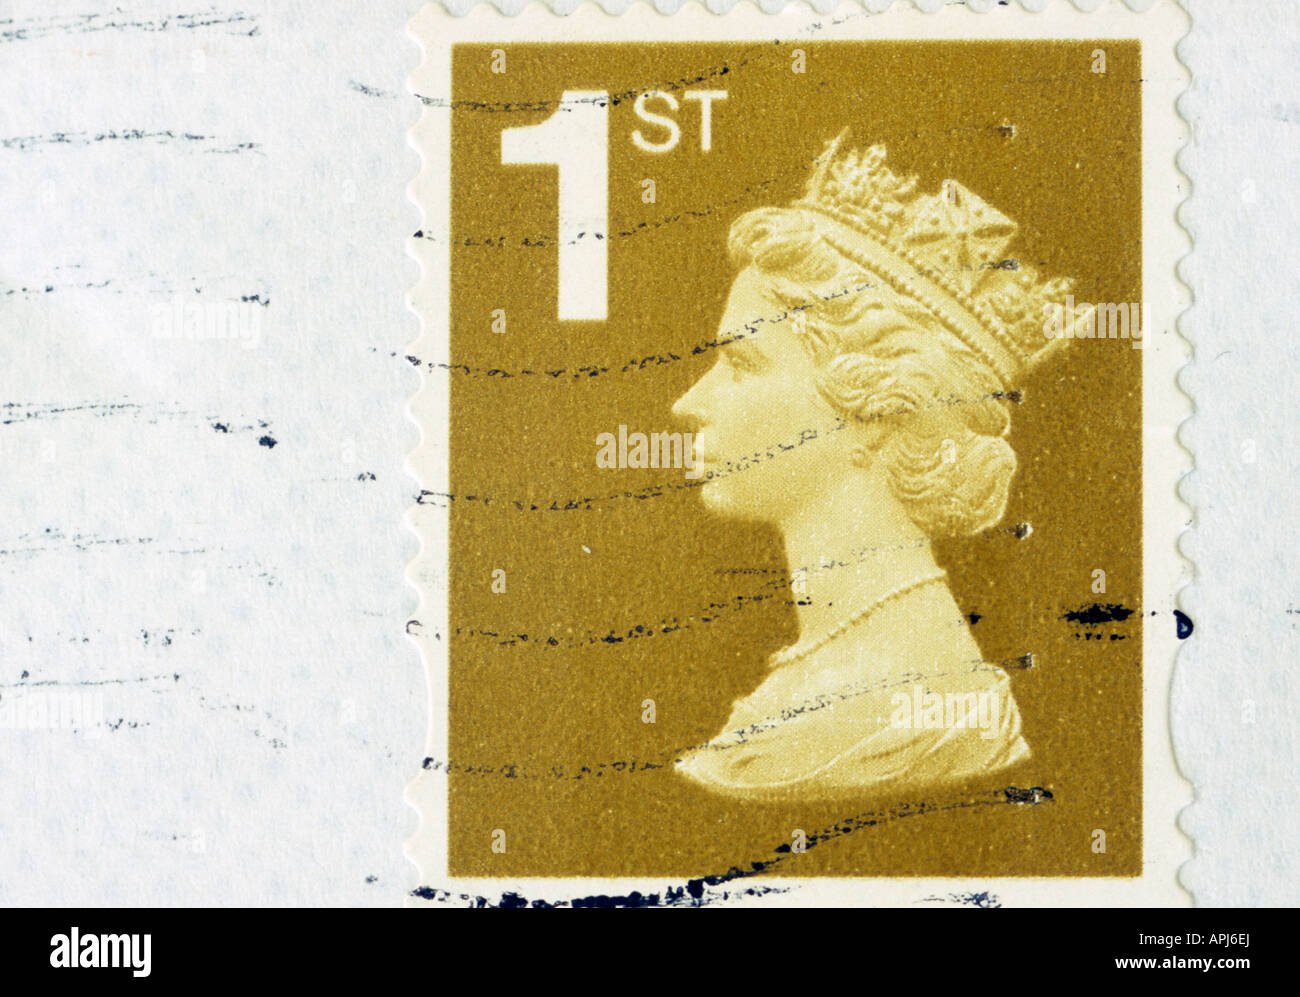 Close Up Of 1st Class Stamp in the uk - Stock Image